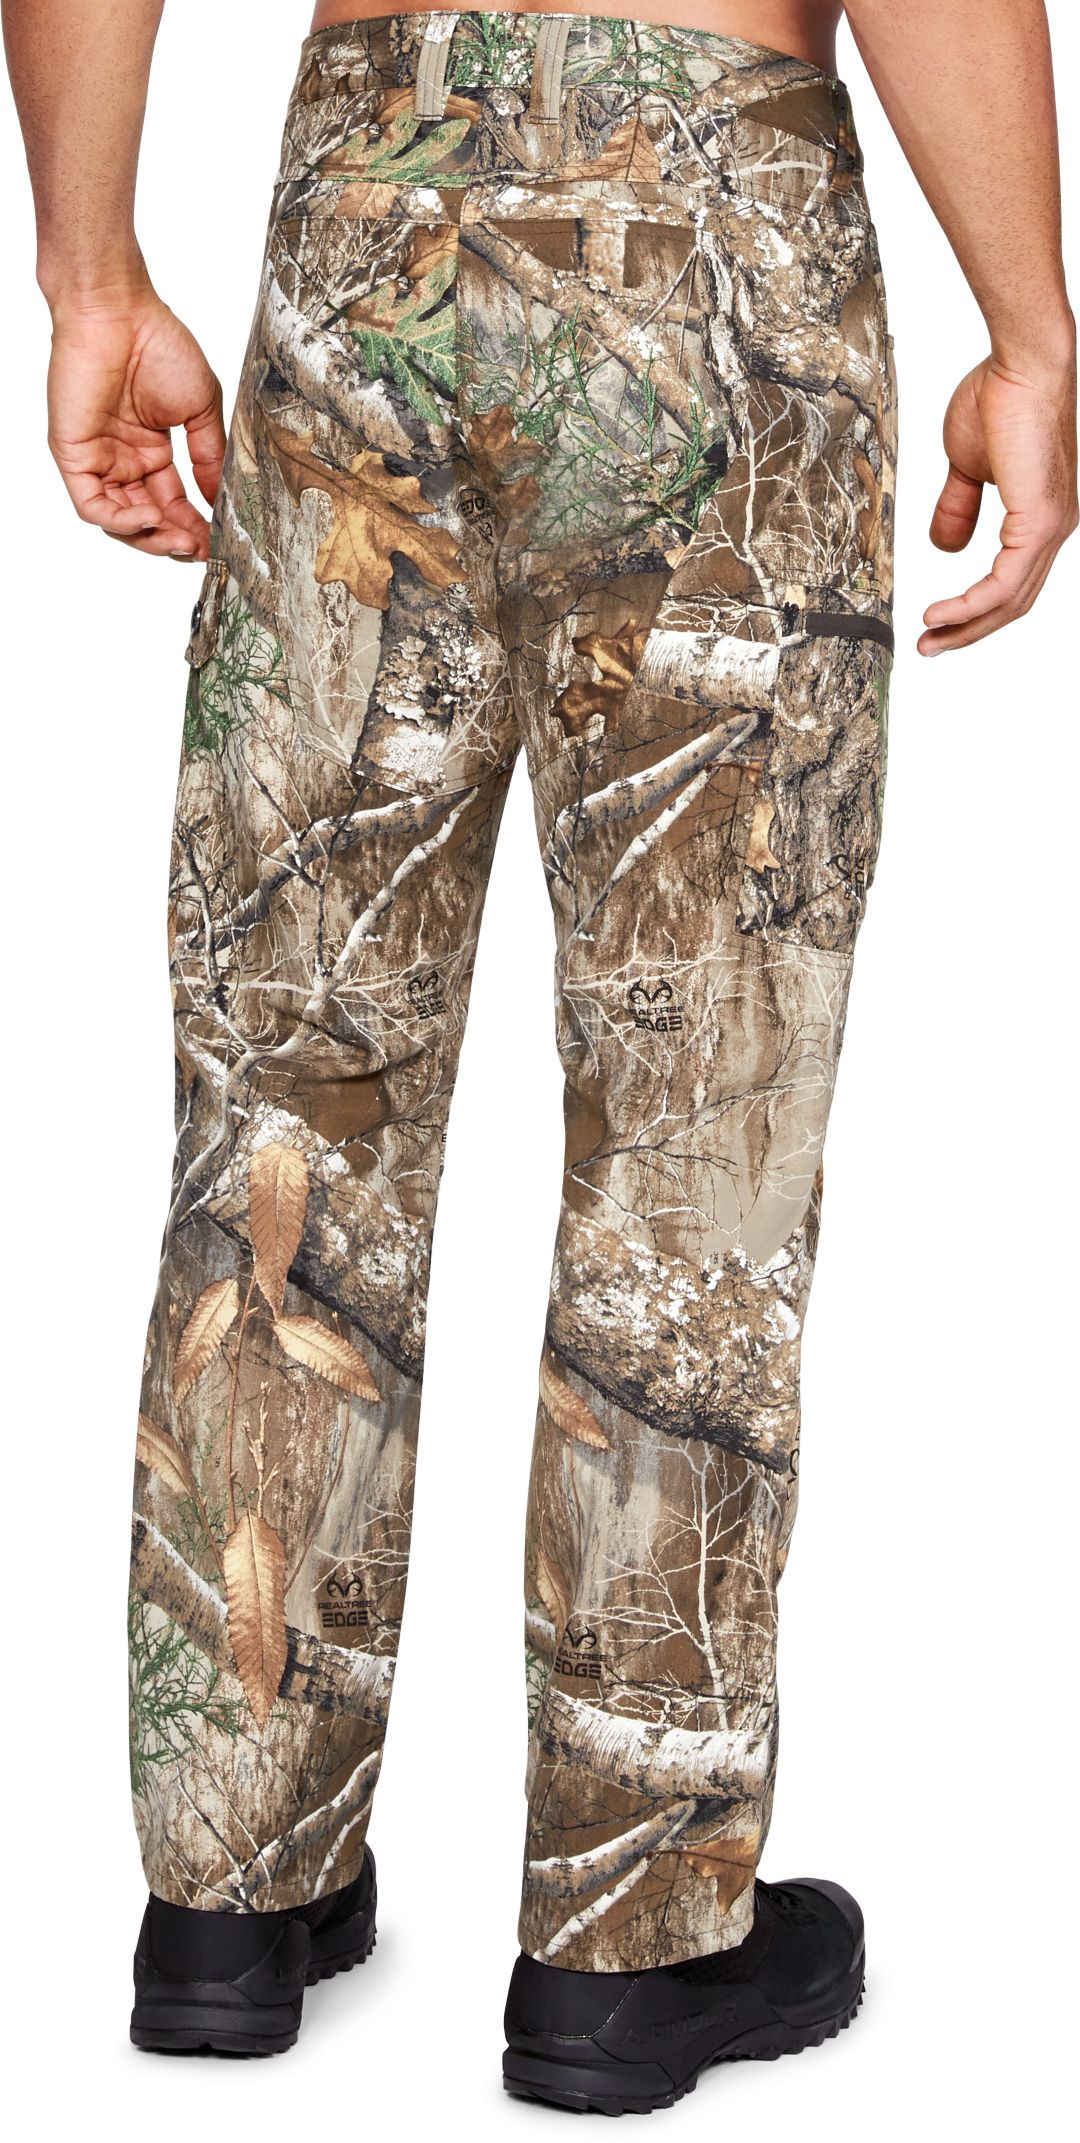 c69f82652041 Under Armour Men's Field OPS Hunting Pants